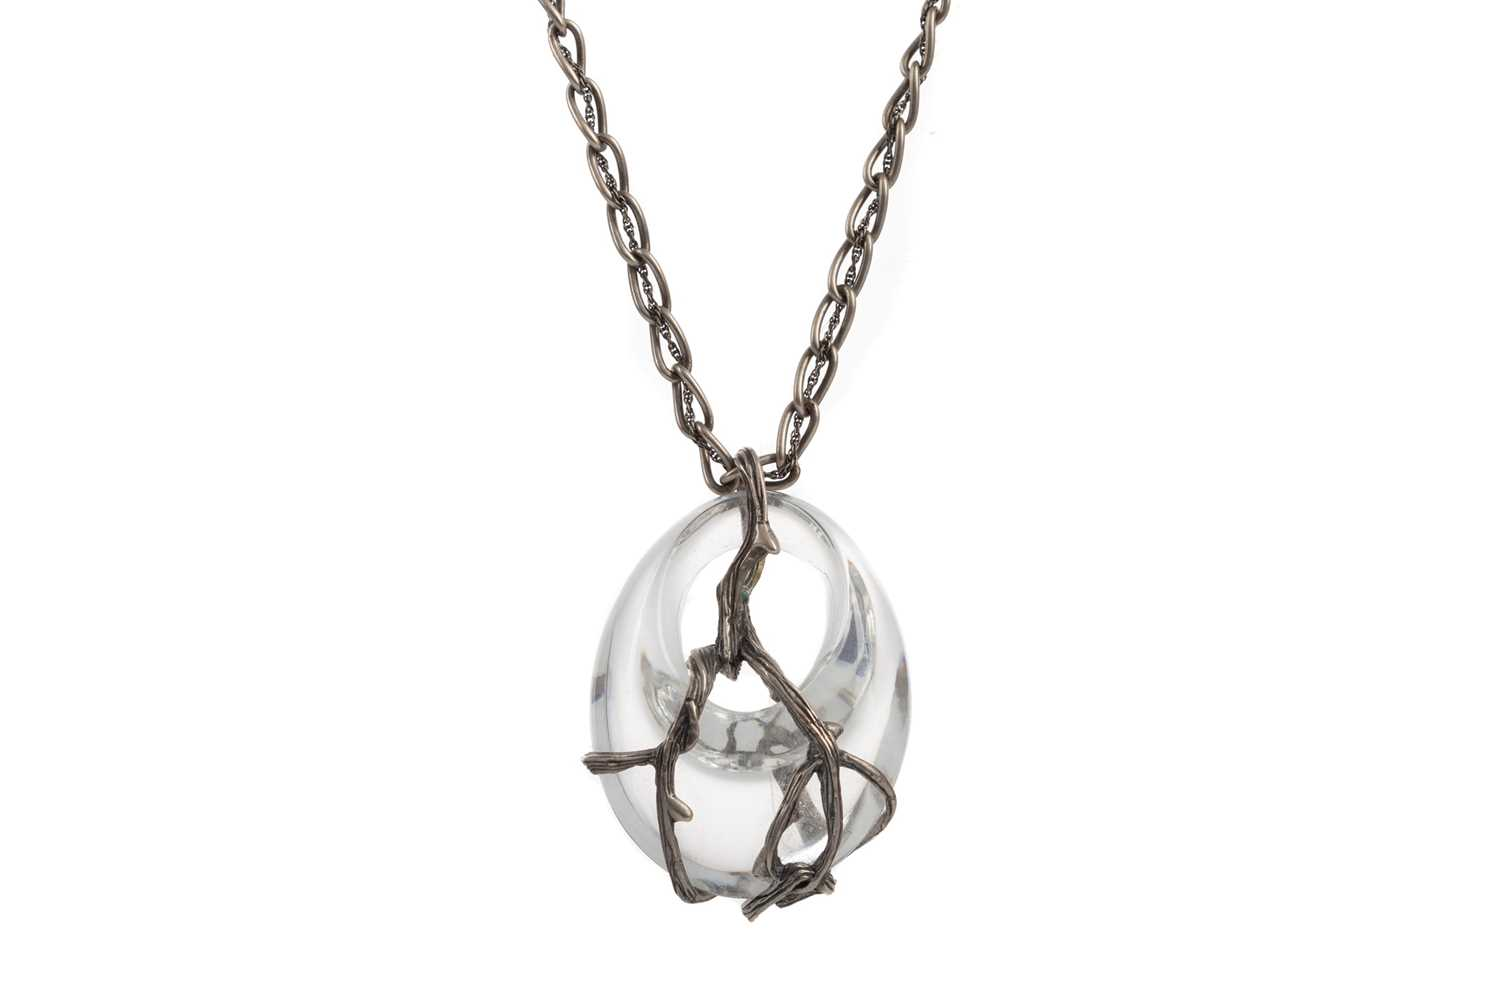 Lot 1042 - A LALIQUE CRYSTAL AND SILVER 'RONCES' PATTERN PENDANT